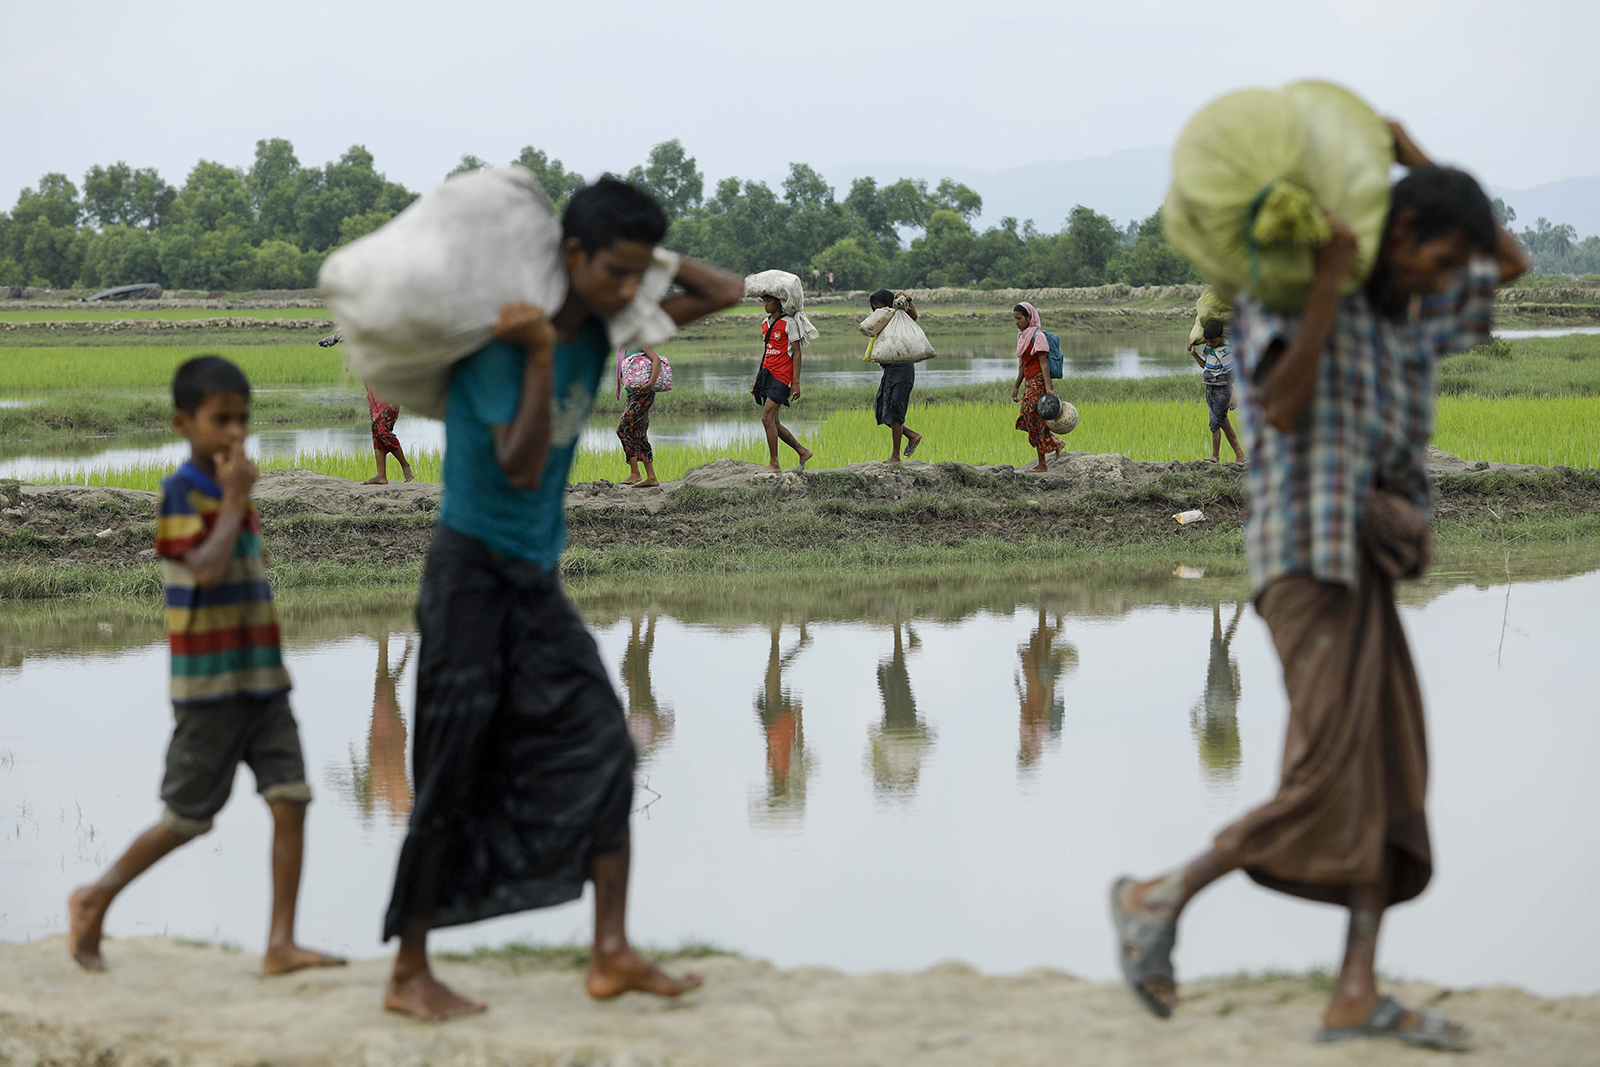 Rohingya Muslim refugees arrive from Myanmar through Lomba Beel after crossing the Naf river in the Bangladeshi town of Teknaf on September 7, 2017 - AFP